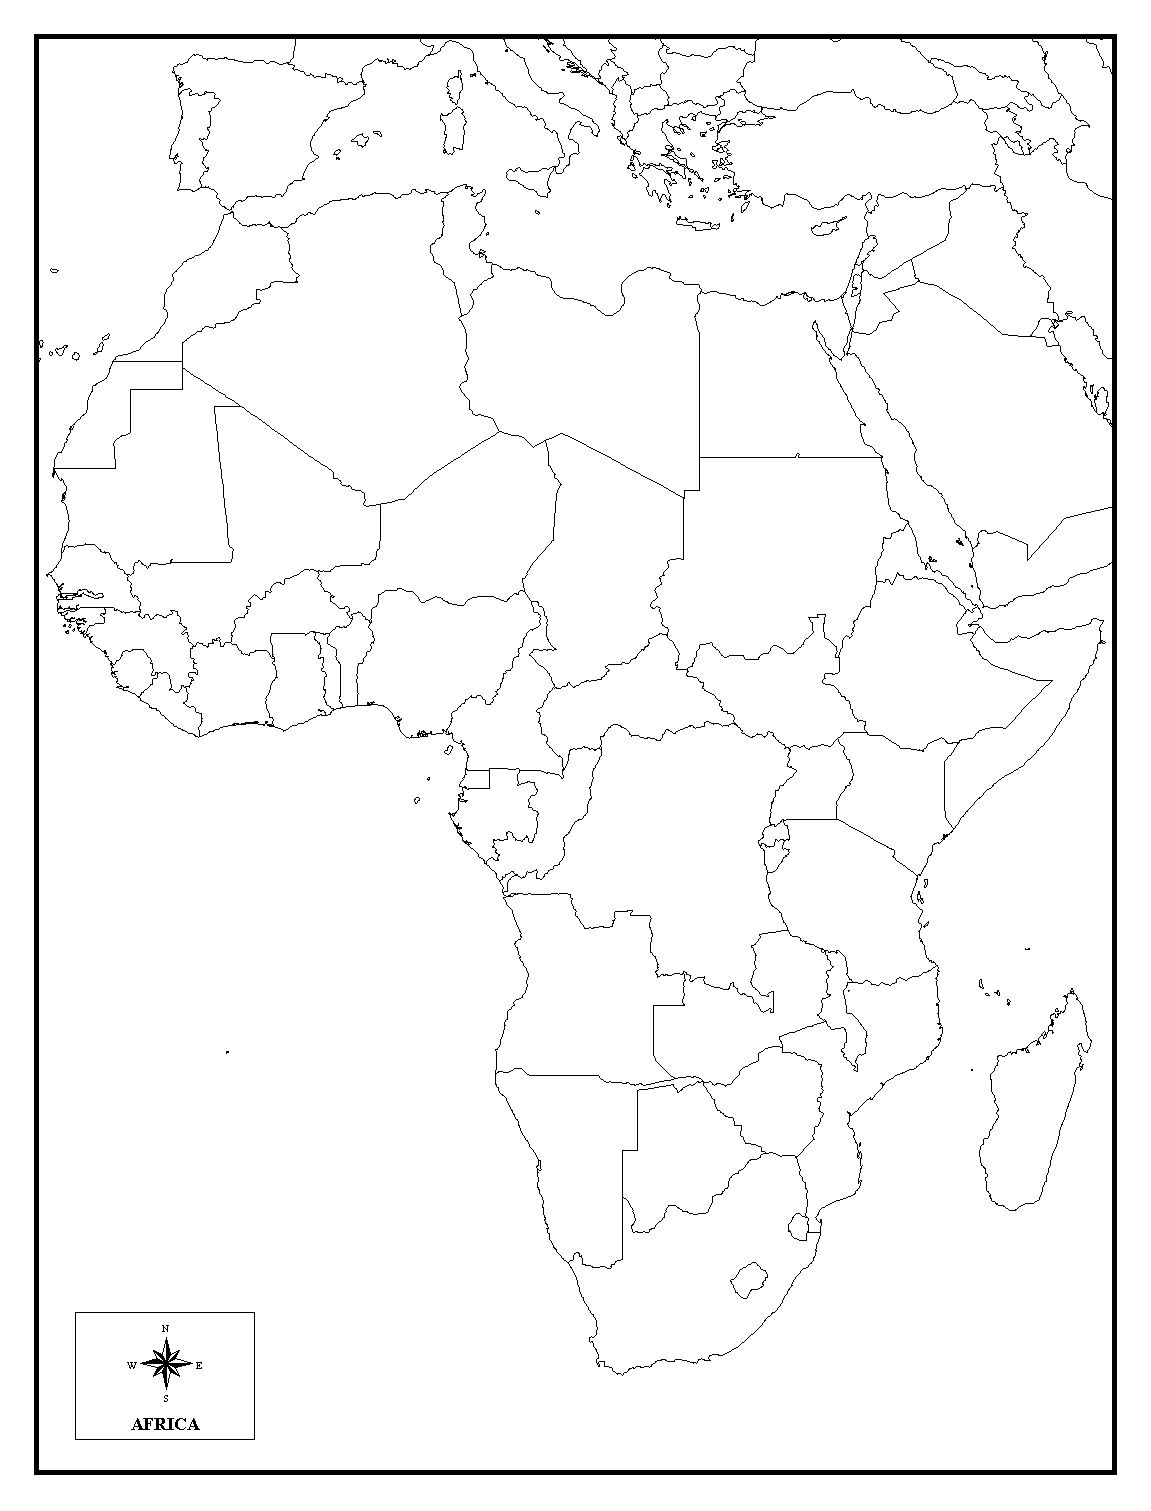 map of africa printable black and white detailed map of africa continent in black silhouette africa white and black map printable of